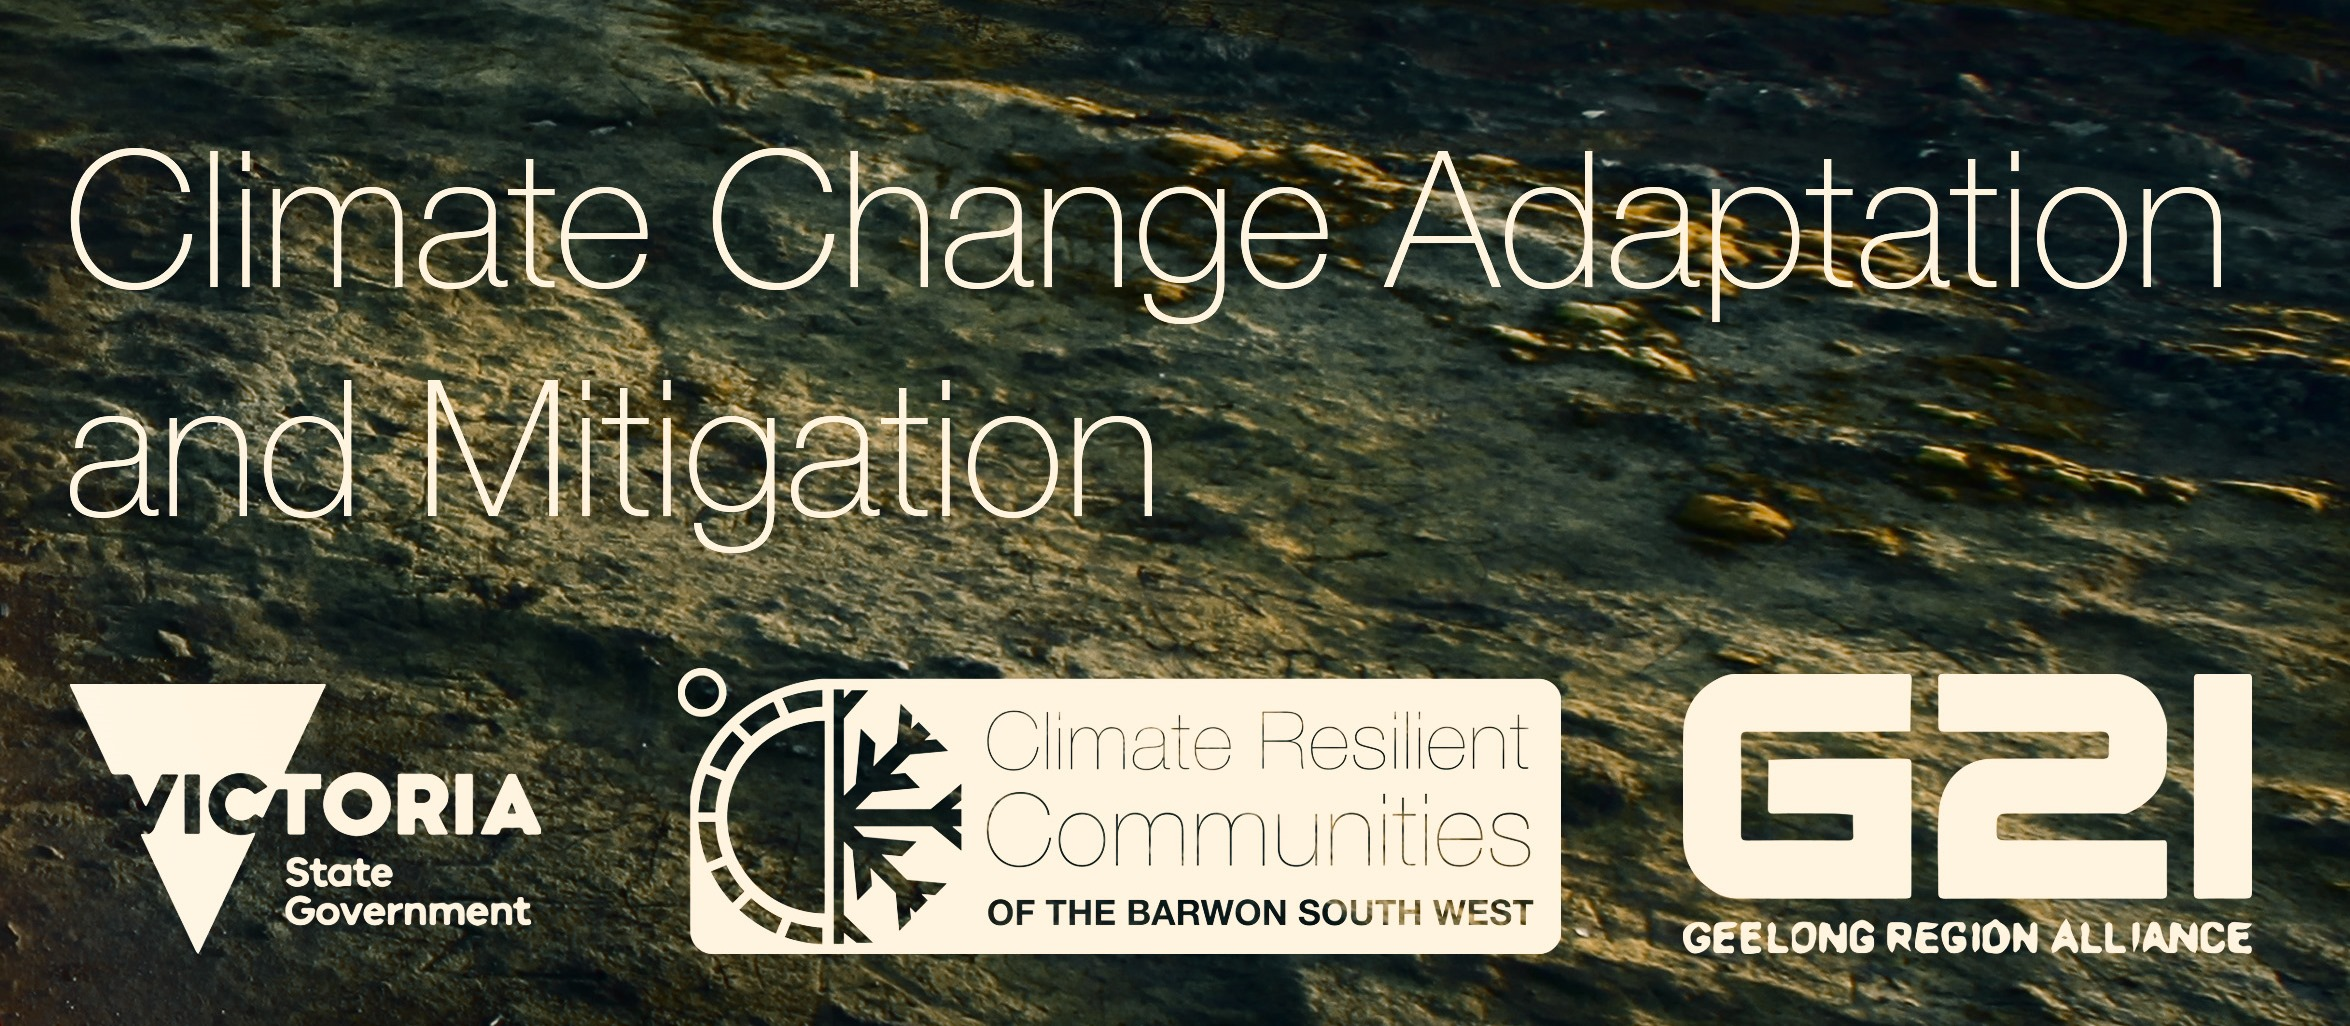 Partners of the Barwon South West Climate Change Forum